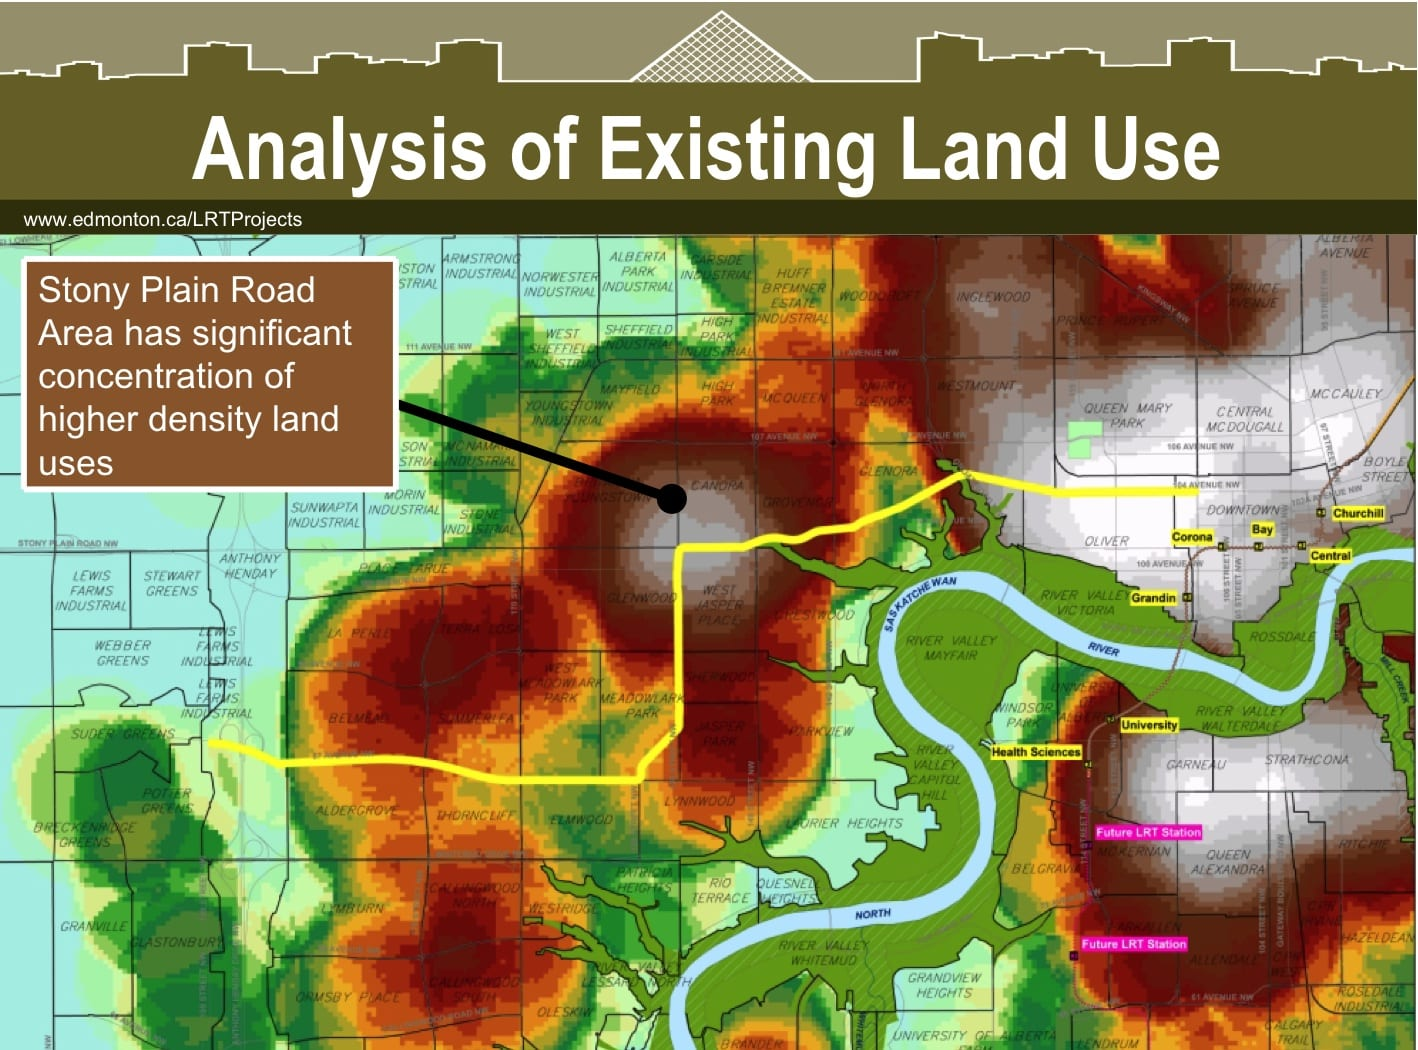 WLRT existing land use intensity